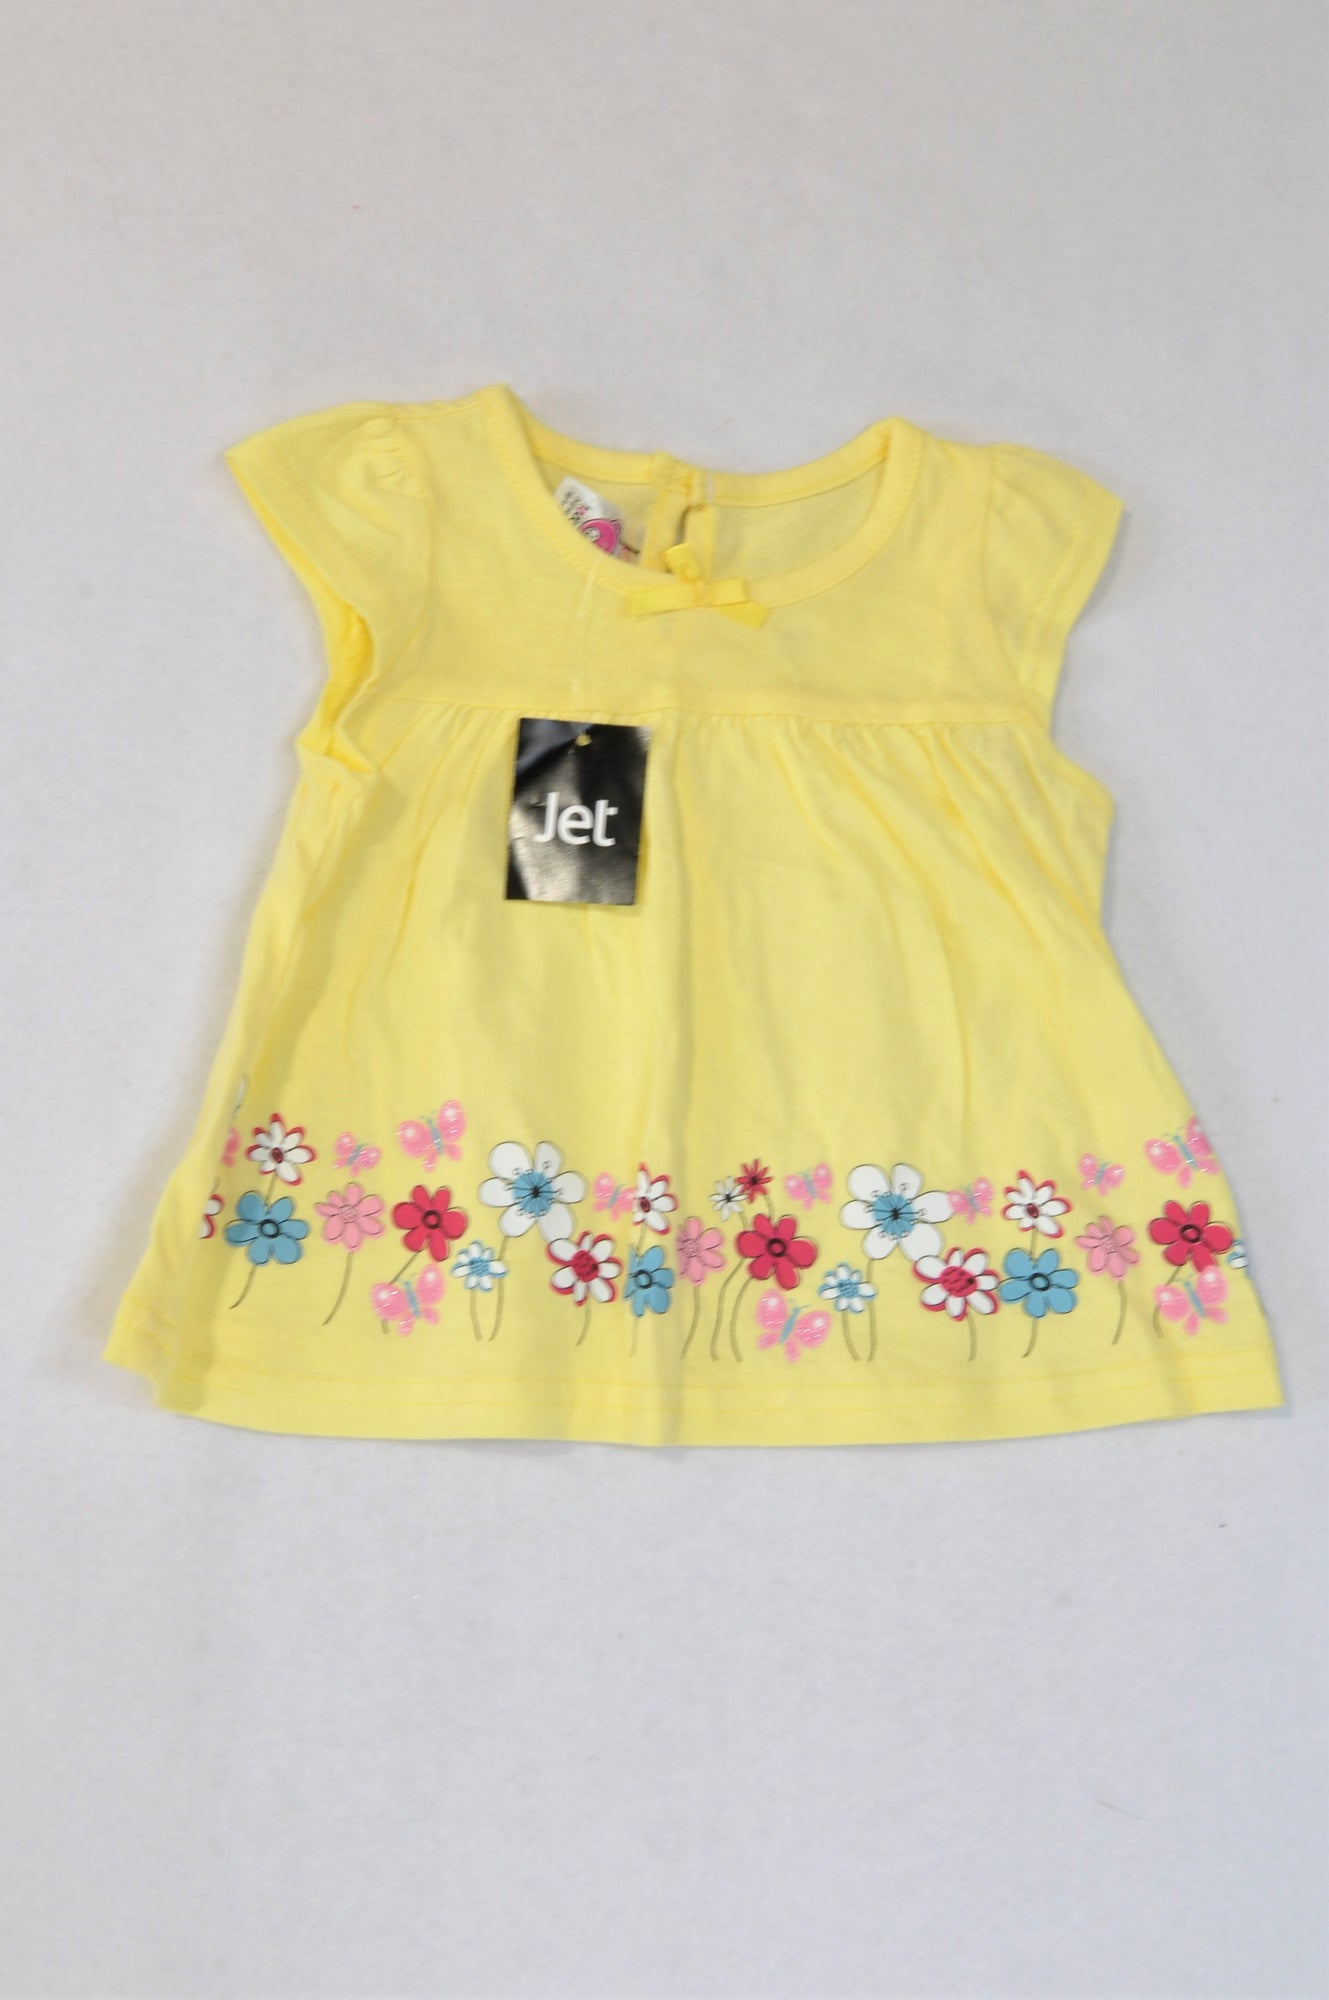 New Jet Soft Yellow Flower Trim Bow Dress Girls 3-6 months